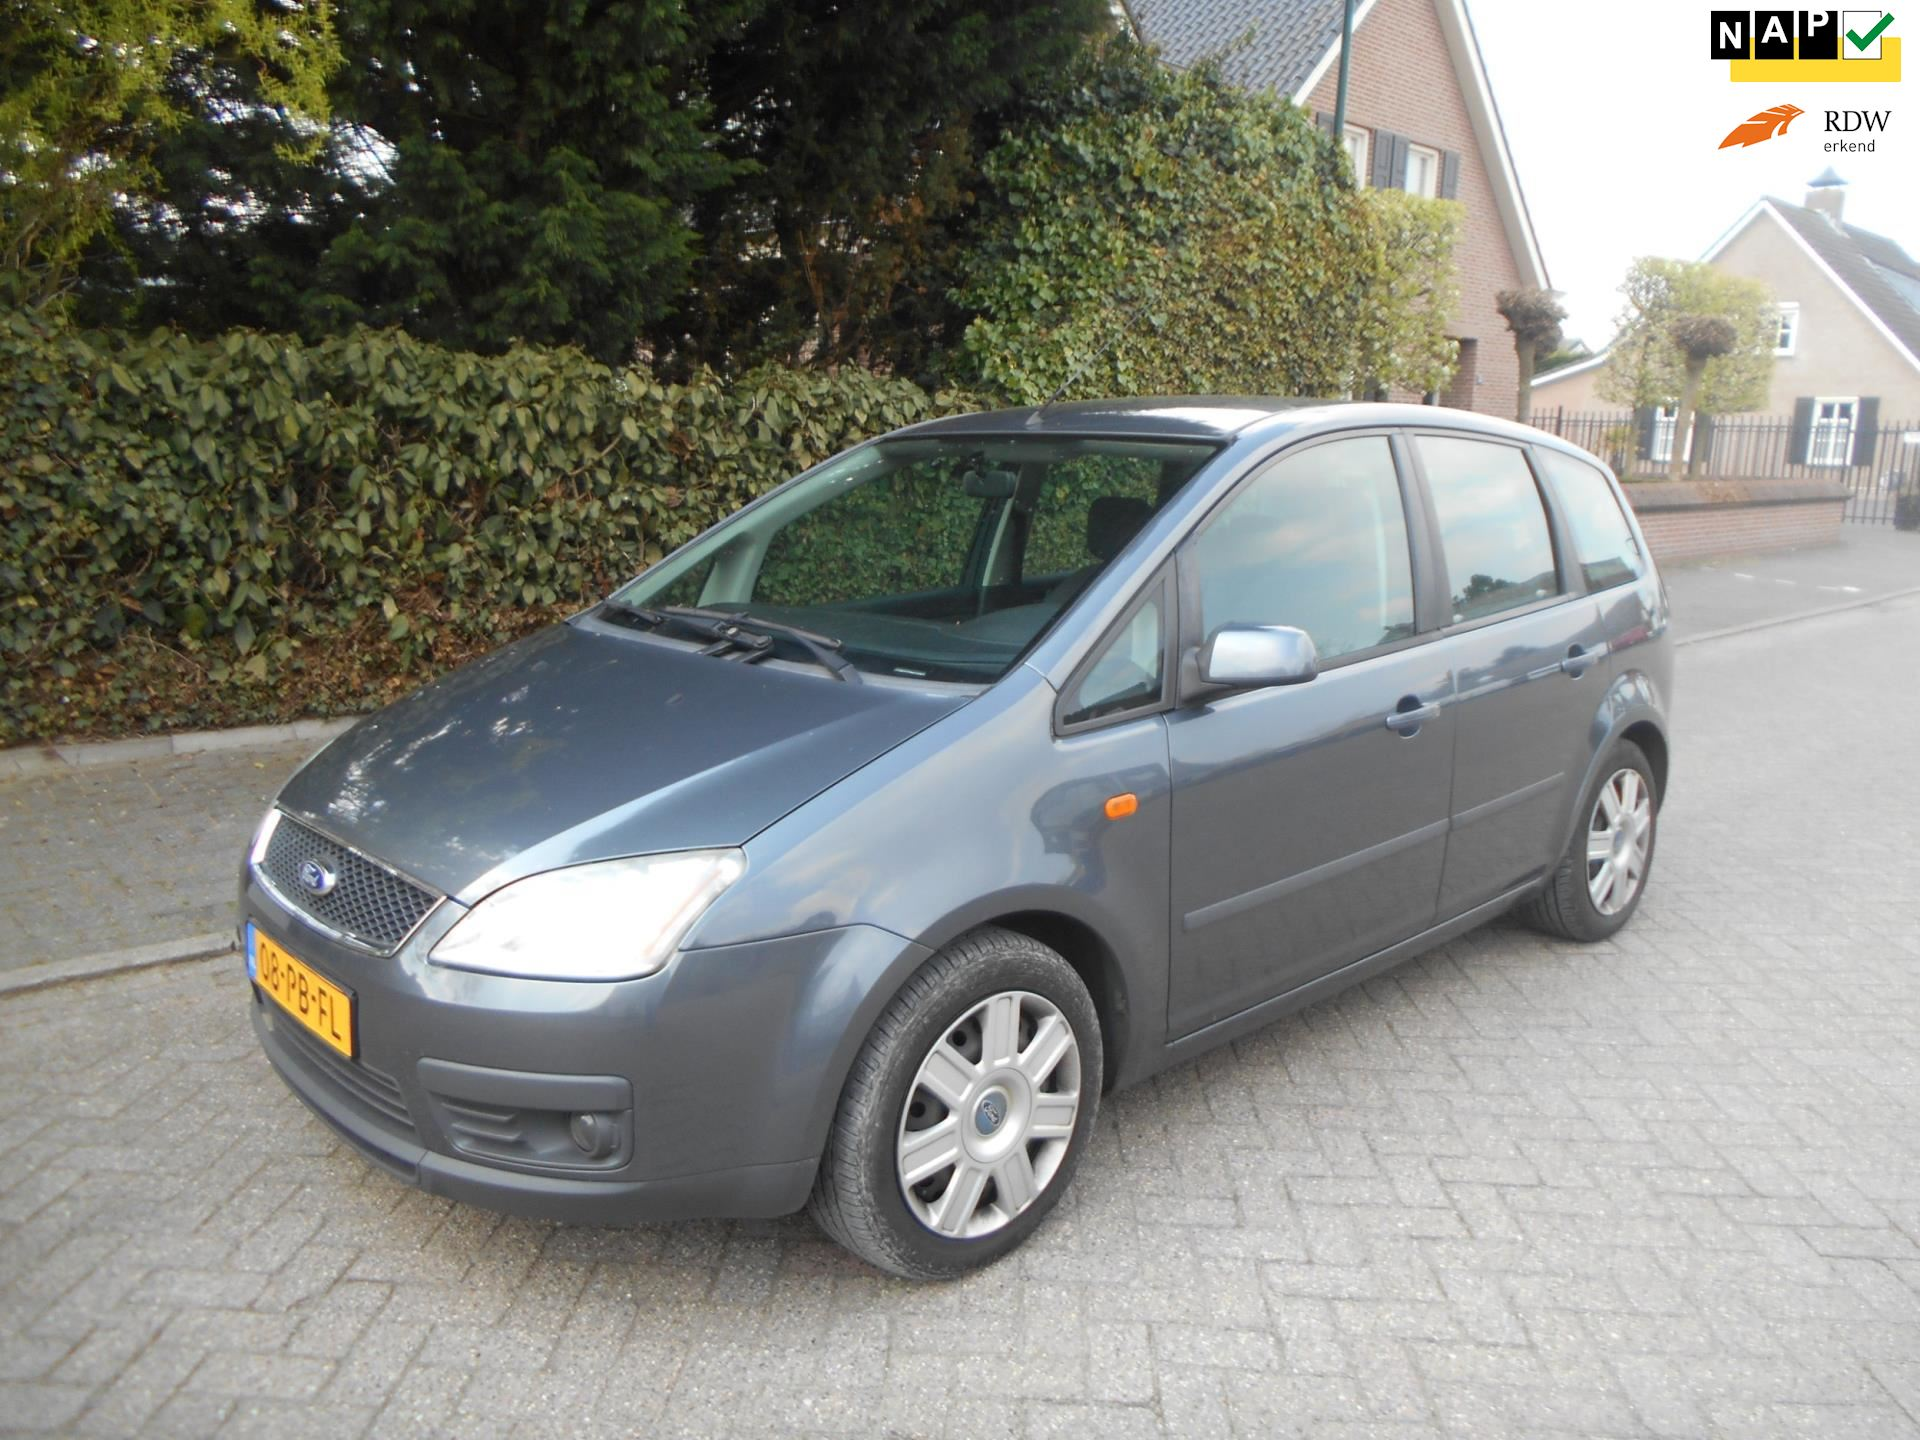 Ford Focus C-Max occasion - Solo Export B.V.